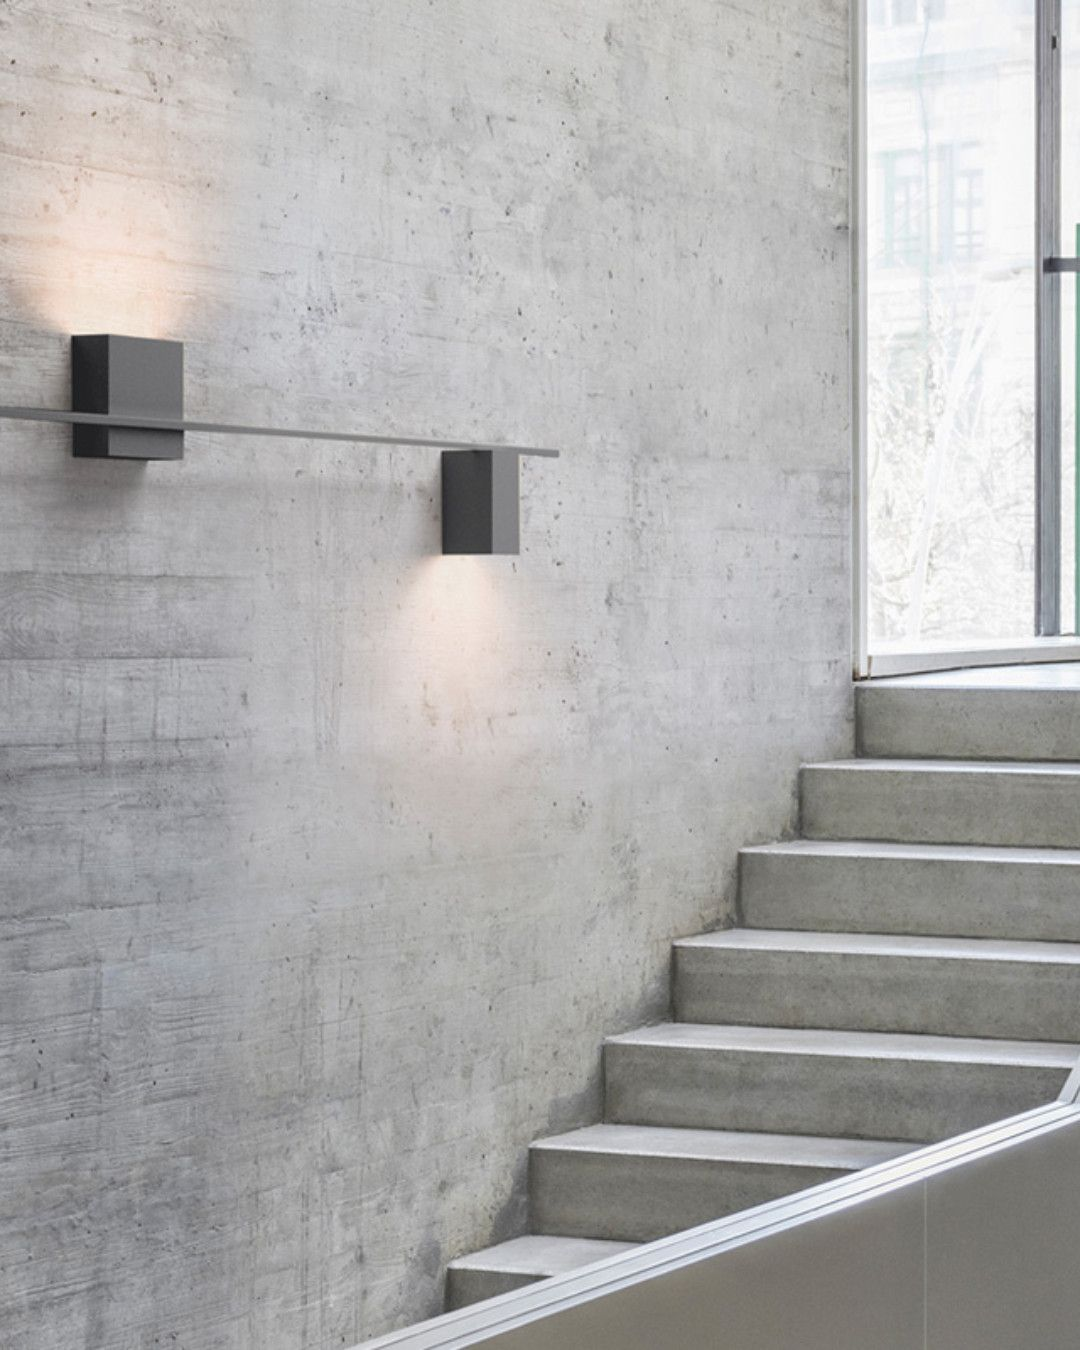 Vibia Structural Led Horizontale Wandleuchte 2 Flammig 261021 23 Wandleuchte Badezimmer Wandleuchten Treppenhaus Beleuchtung